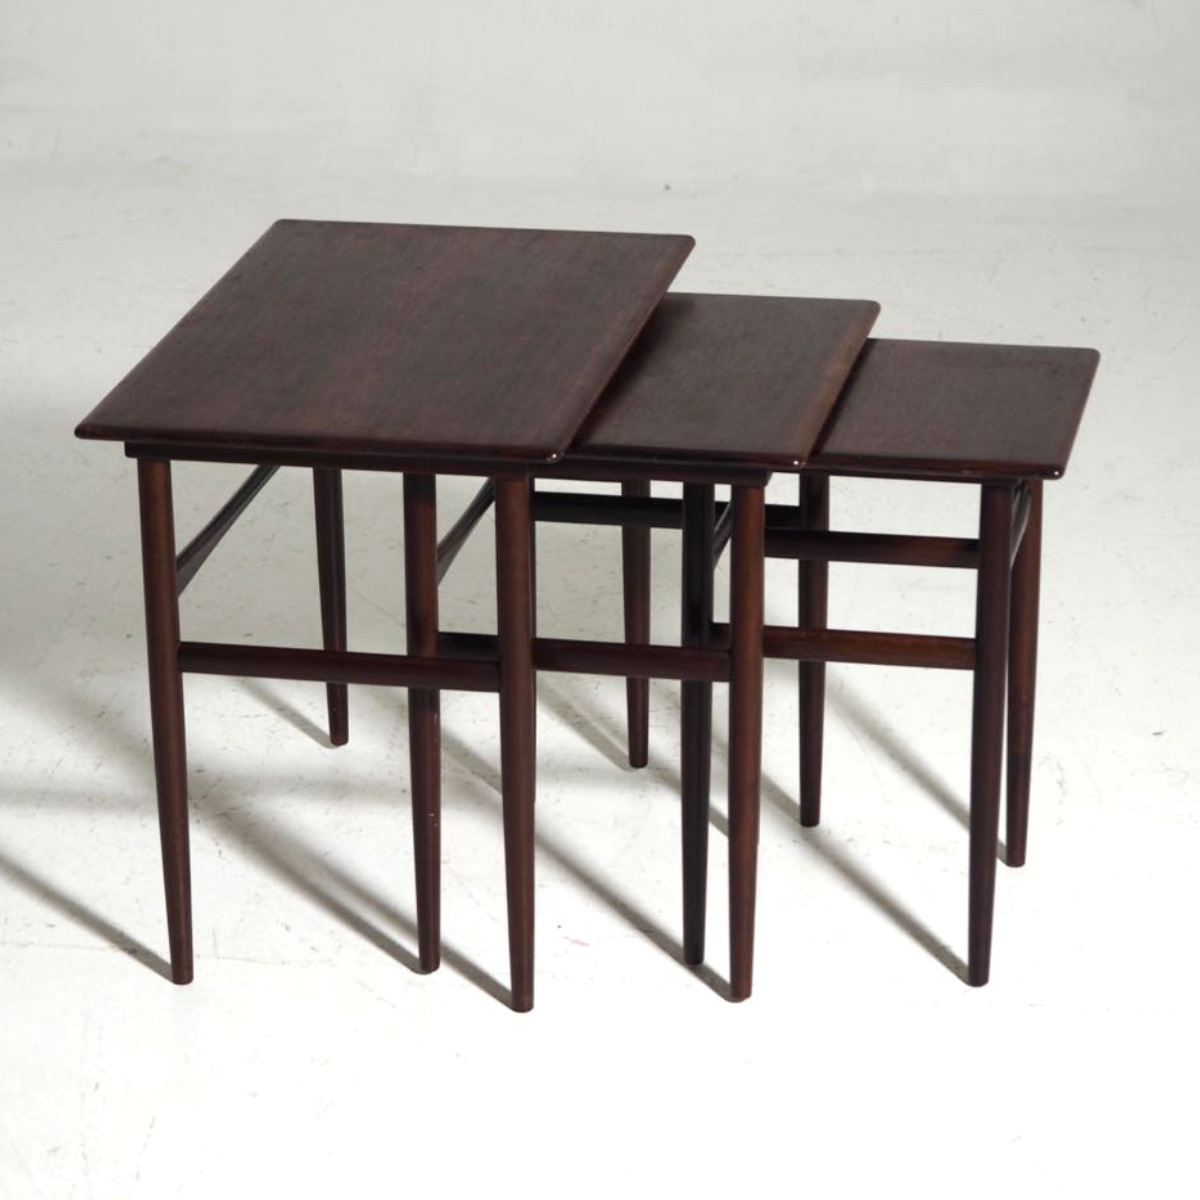 Nest of tables in rosewood, Danish architect, signed Amager Bolighus, circa 1960. .jpg